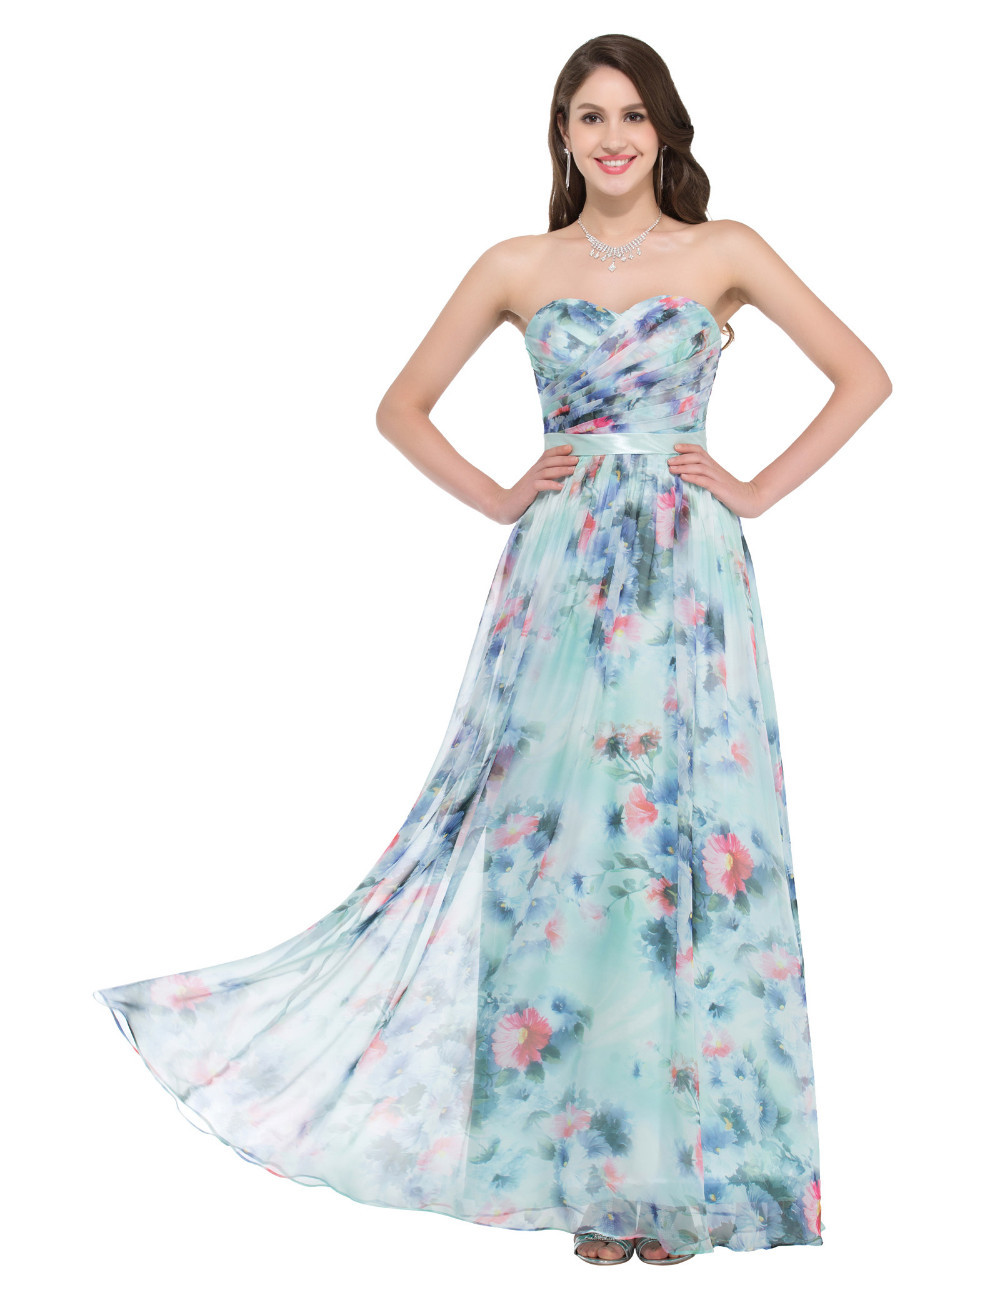 HTB1wAjsNpXXXXc.XVXXq6xXFXXXPFloral Print Formal Occasion Floor length Evening Dress